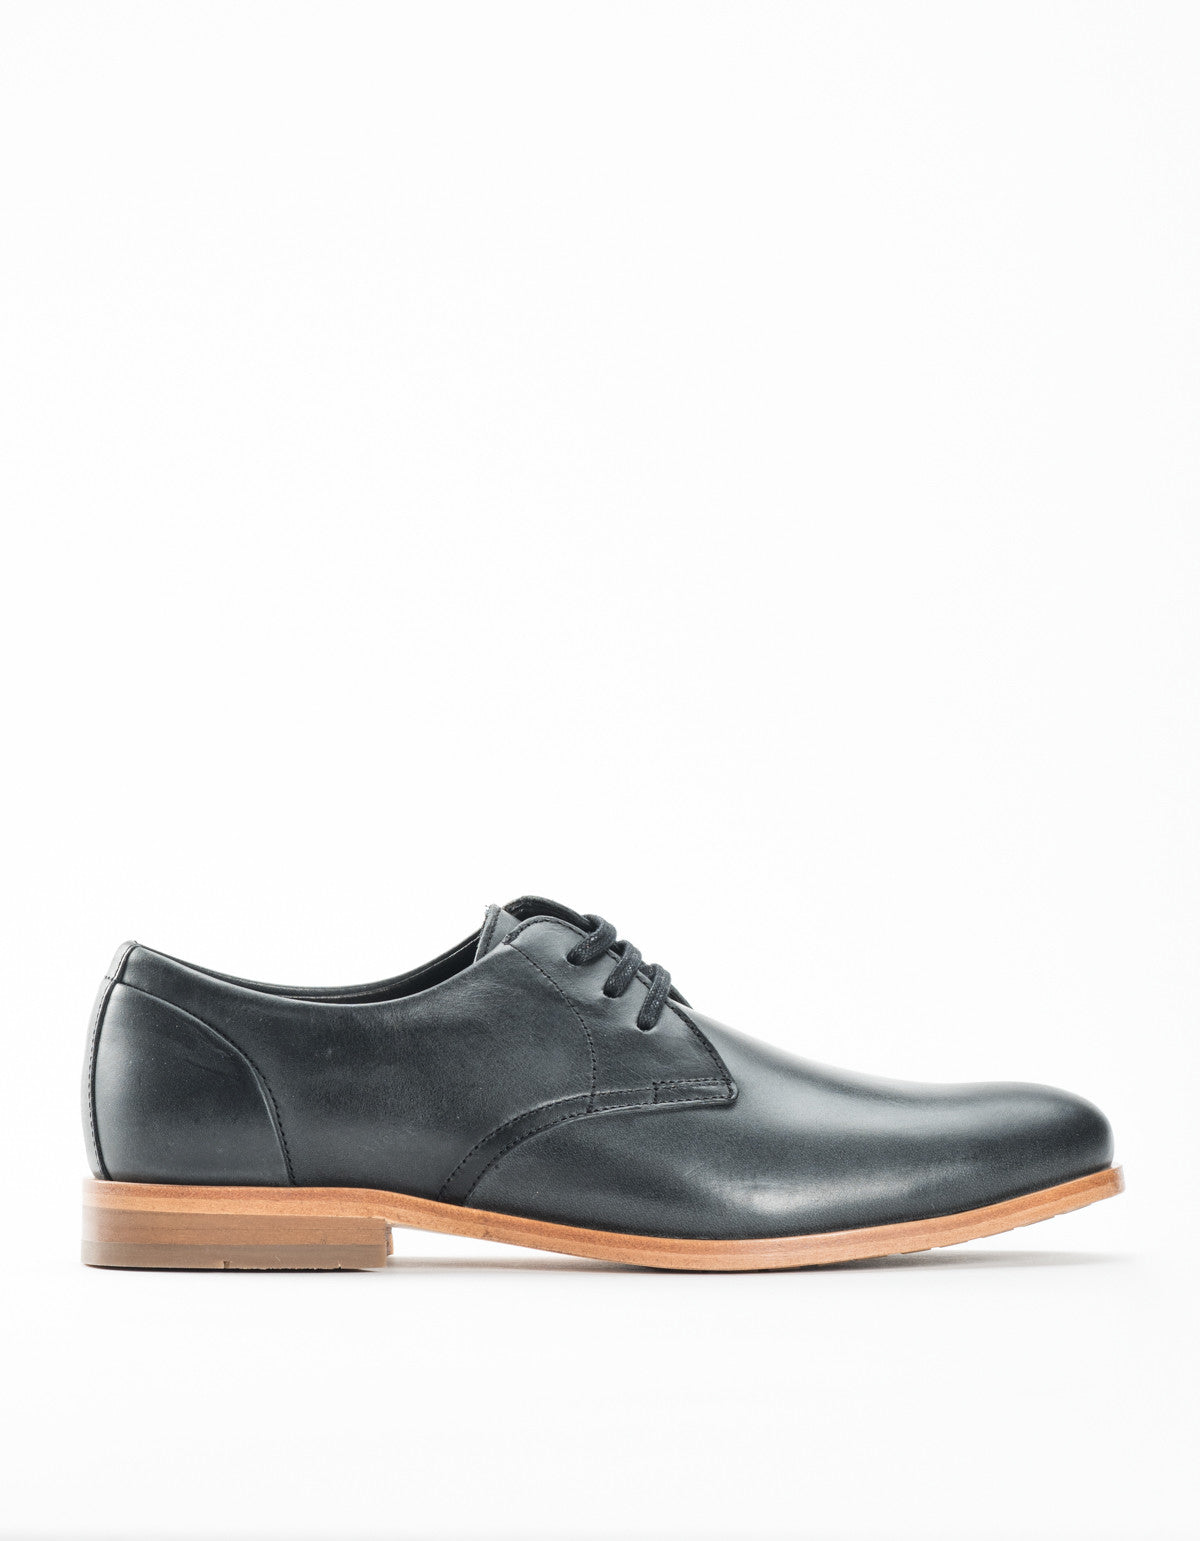 Wolverine 1883 Angelo Oxford Black